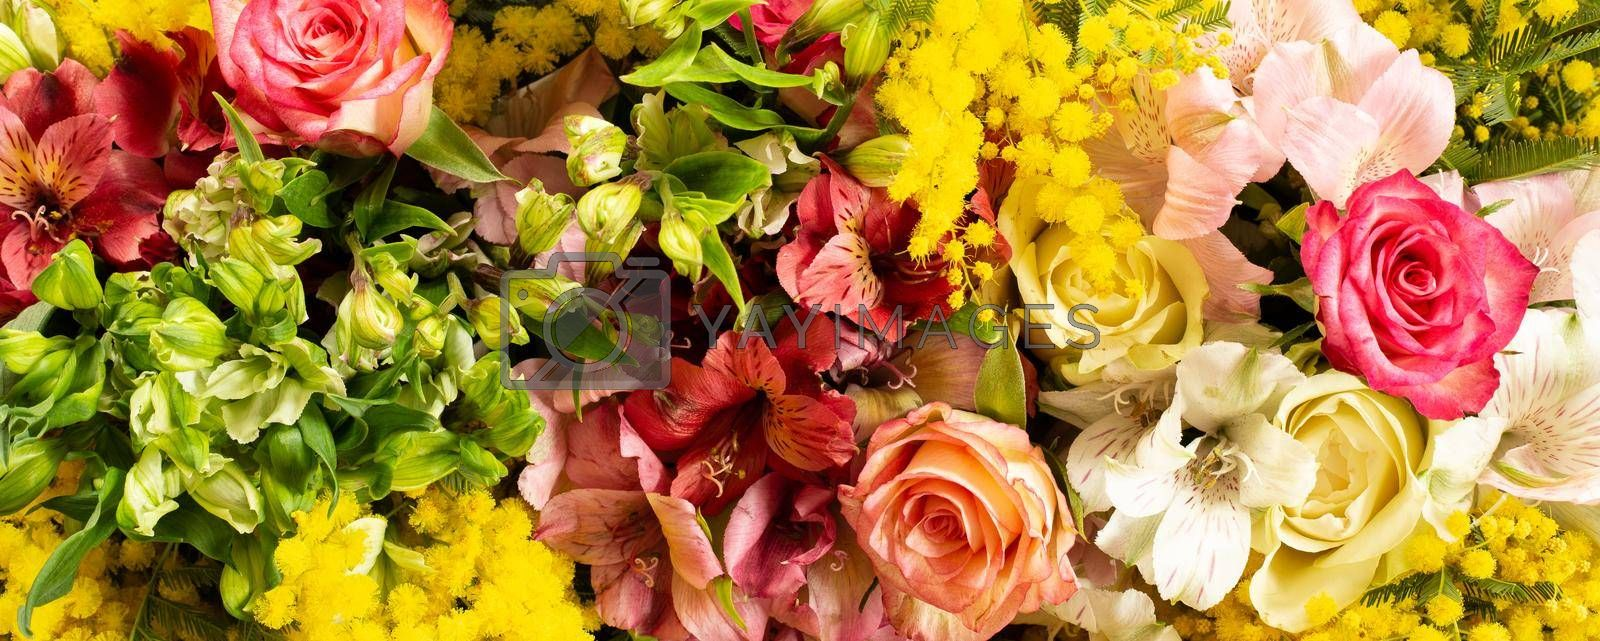 Close up fresh spring flowers. Mimosa, roses. Yellow red vivid background. Flat lay, top view